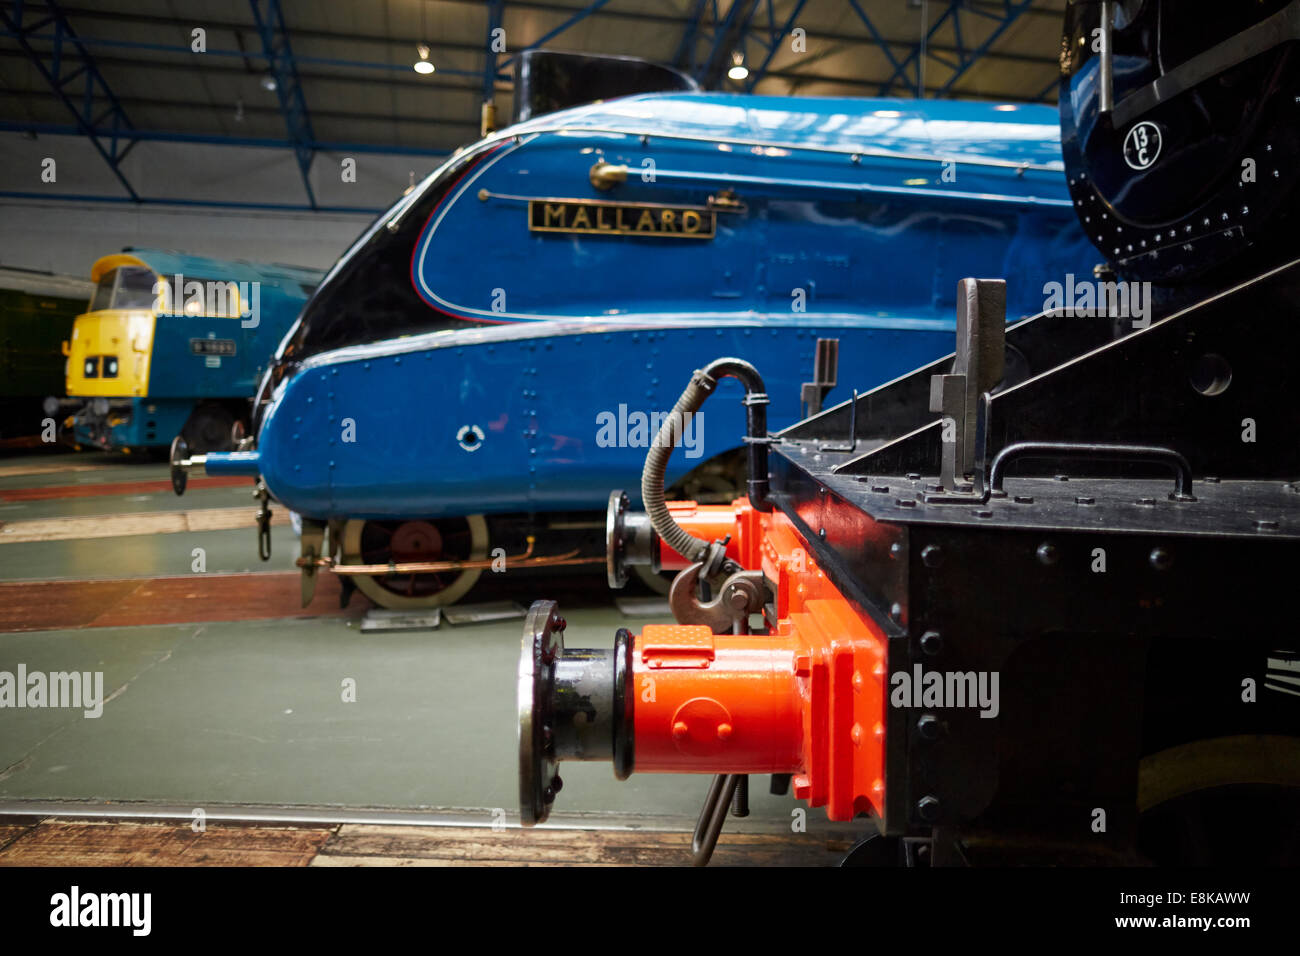 Mallard on display in the great hall National Railway Museum in York Yorkshire UK - Stock Image